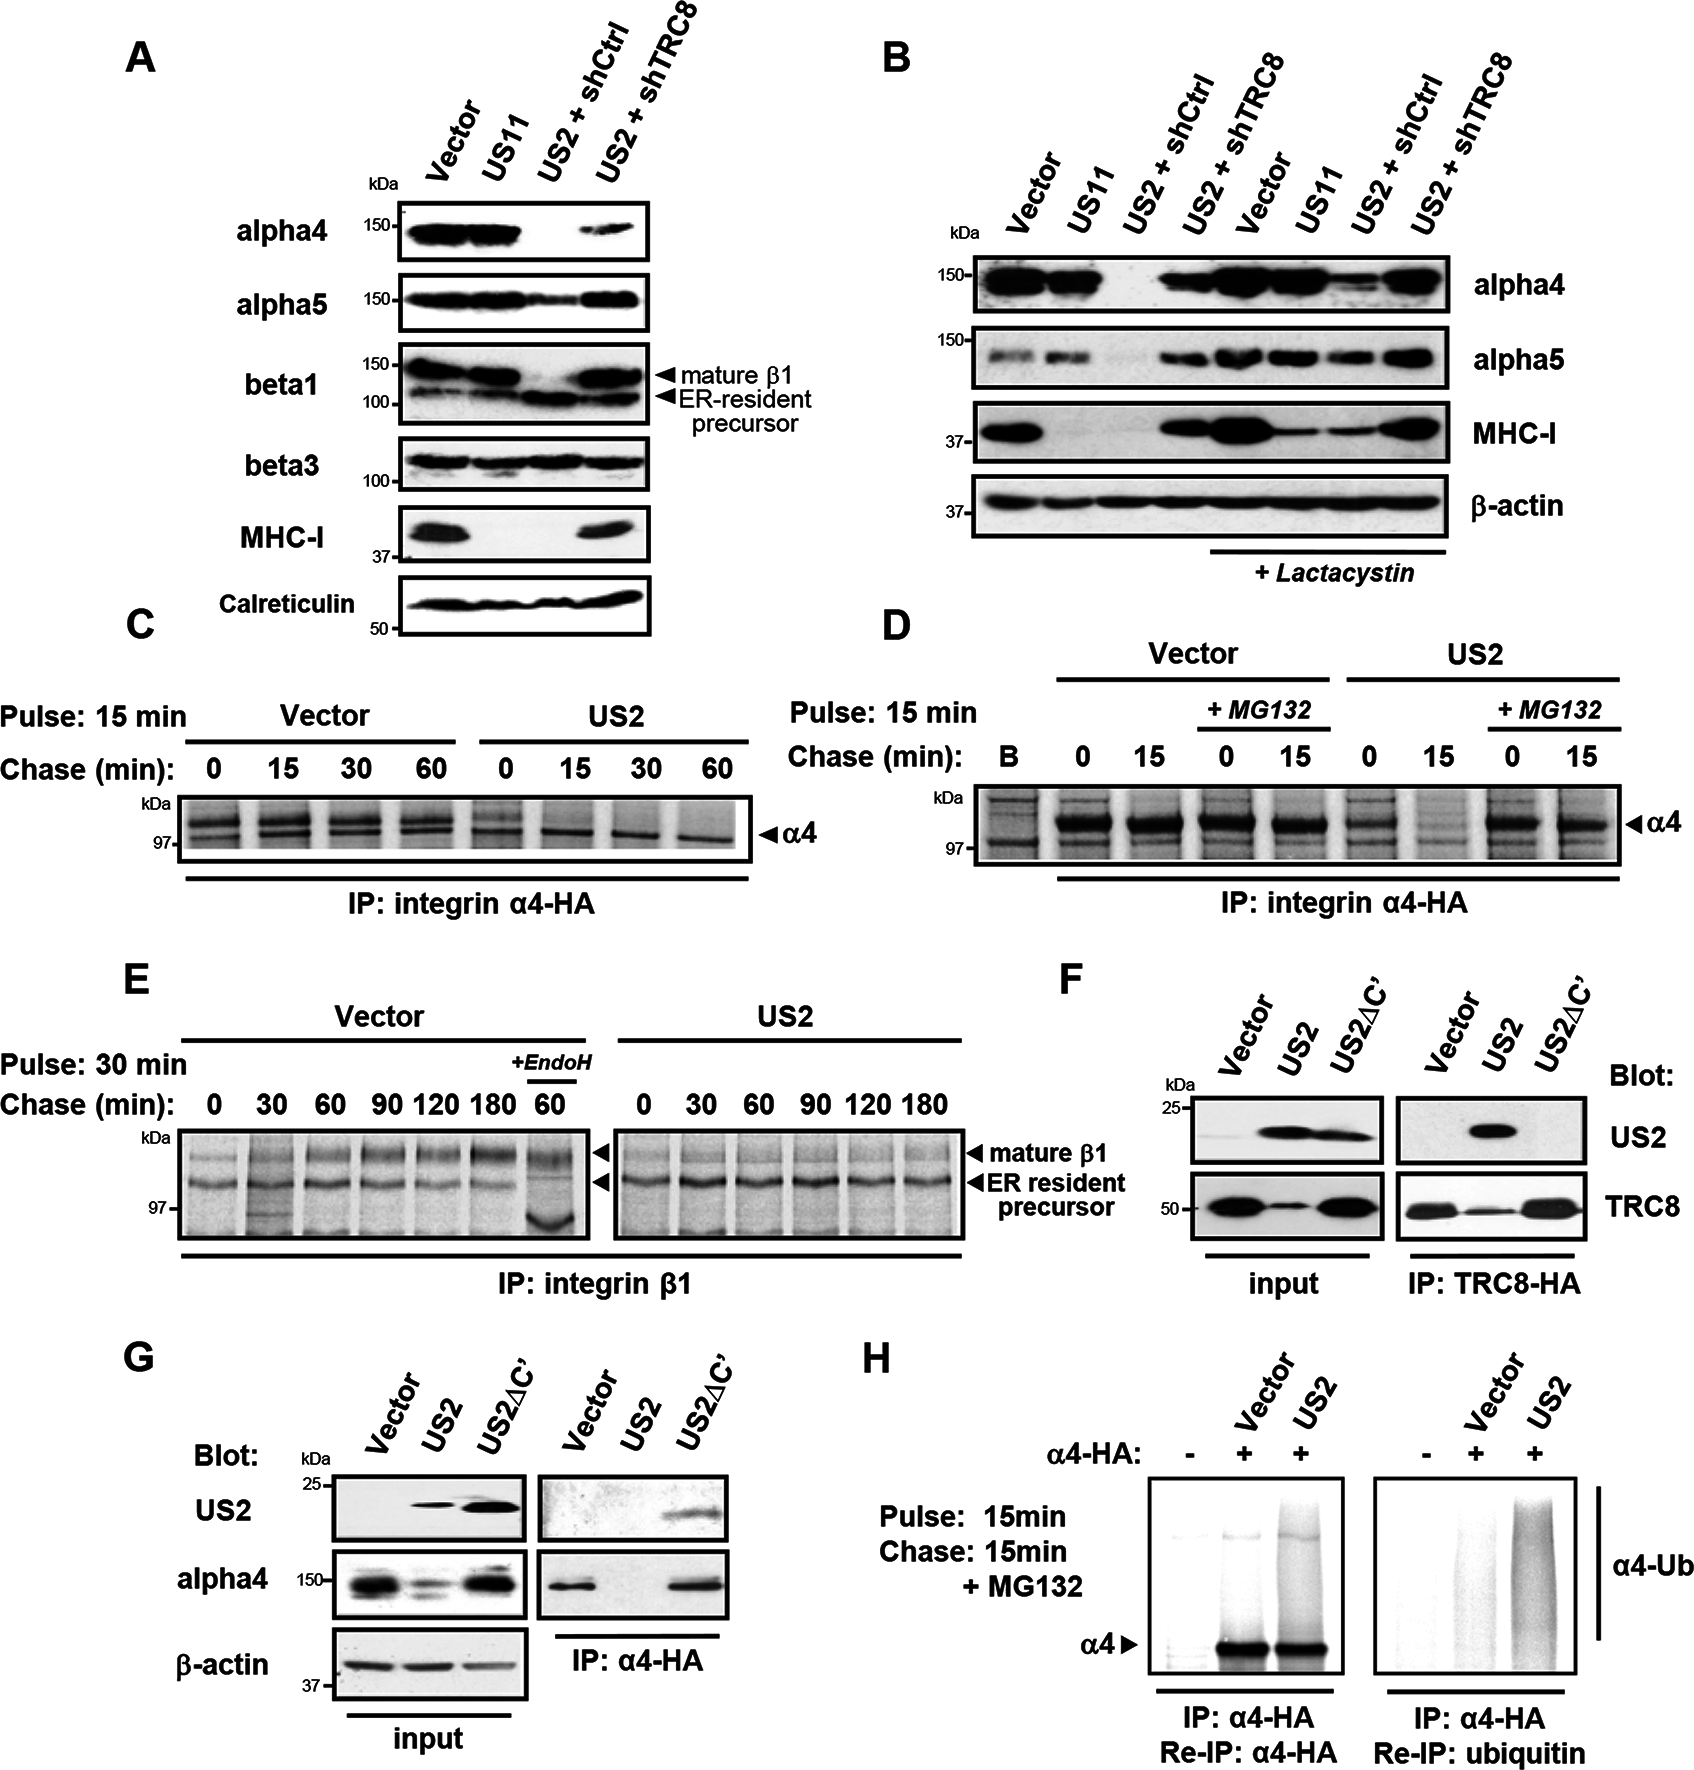 US2 induces the proteasomal degradation of integrin α4 and α5 and prevents maturation of the β1 integrin.